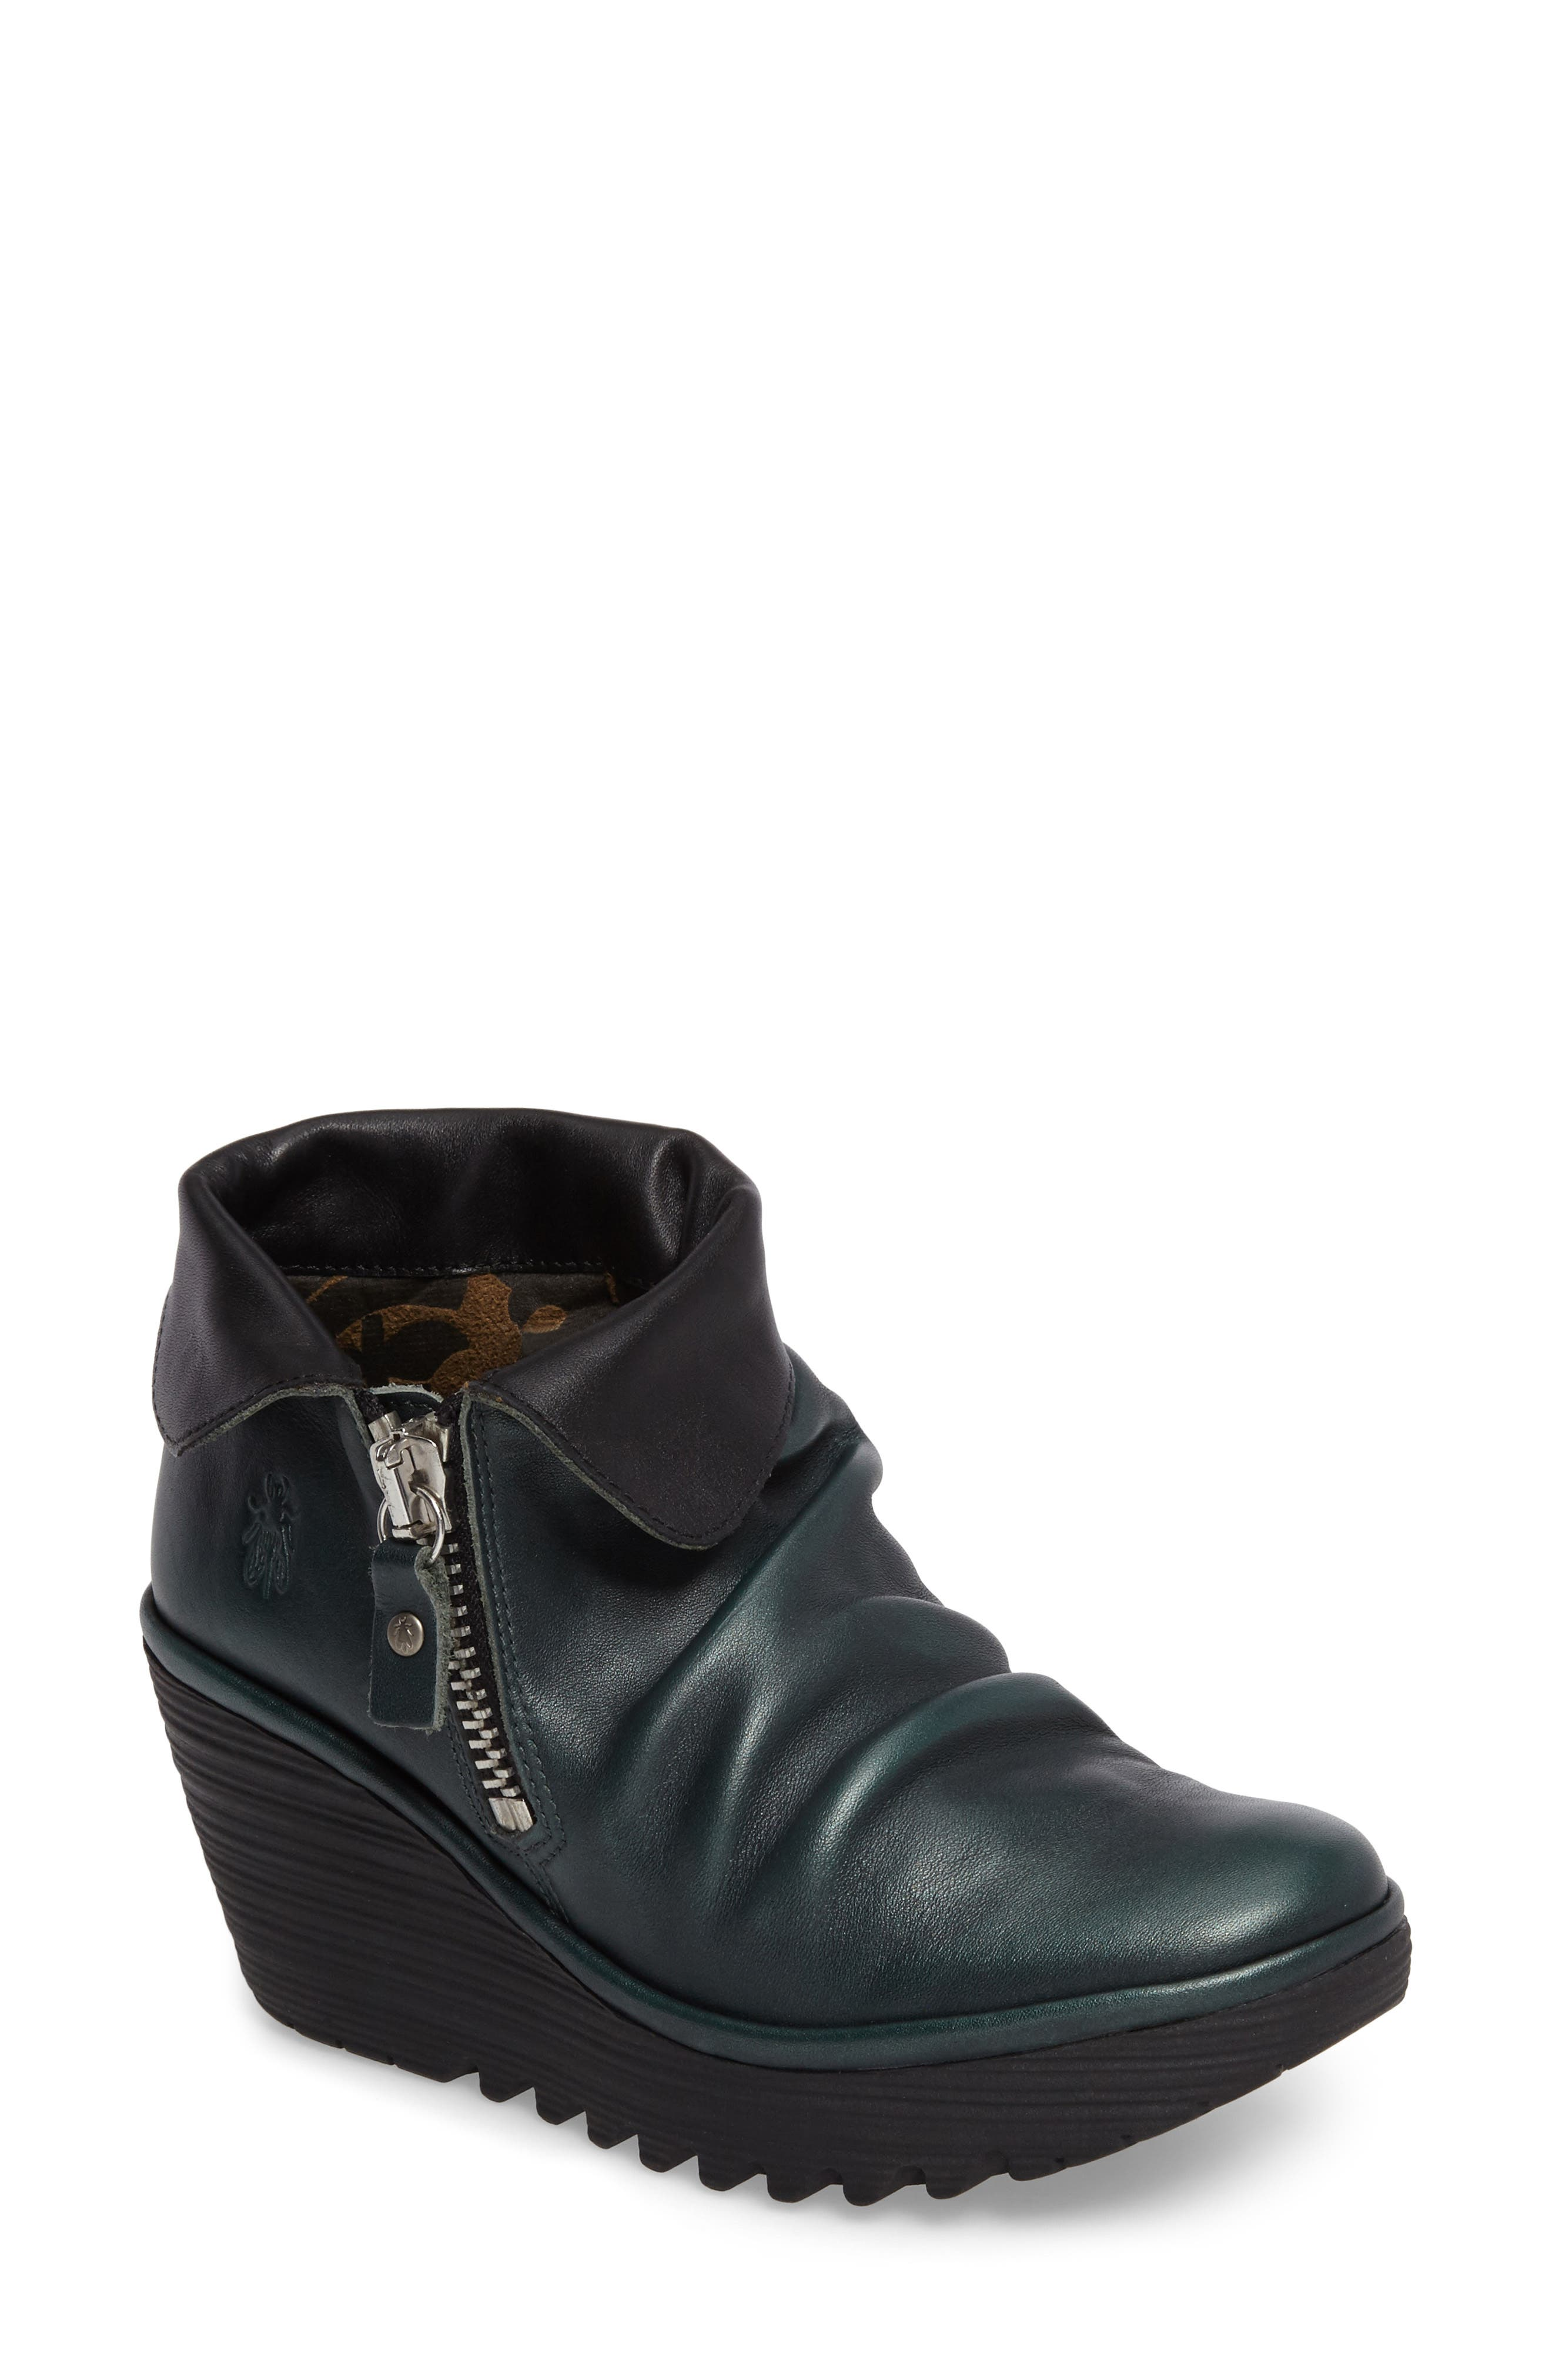 Yoxi Wedge Bootie,                         Main,                         color, Seaweed Leather